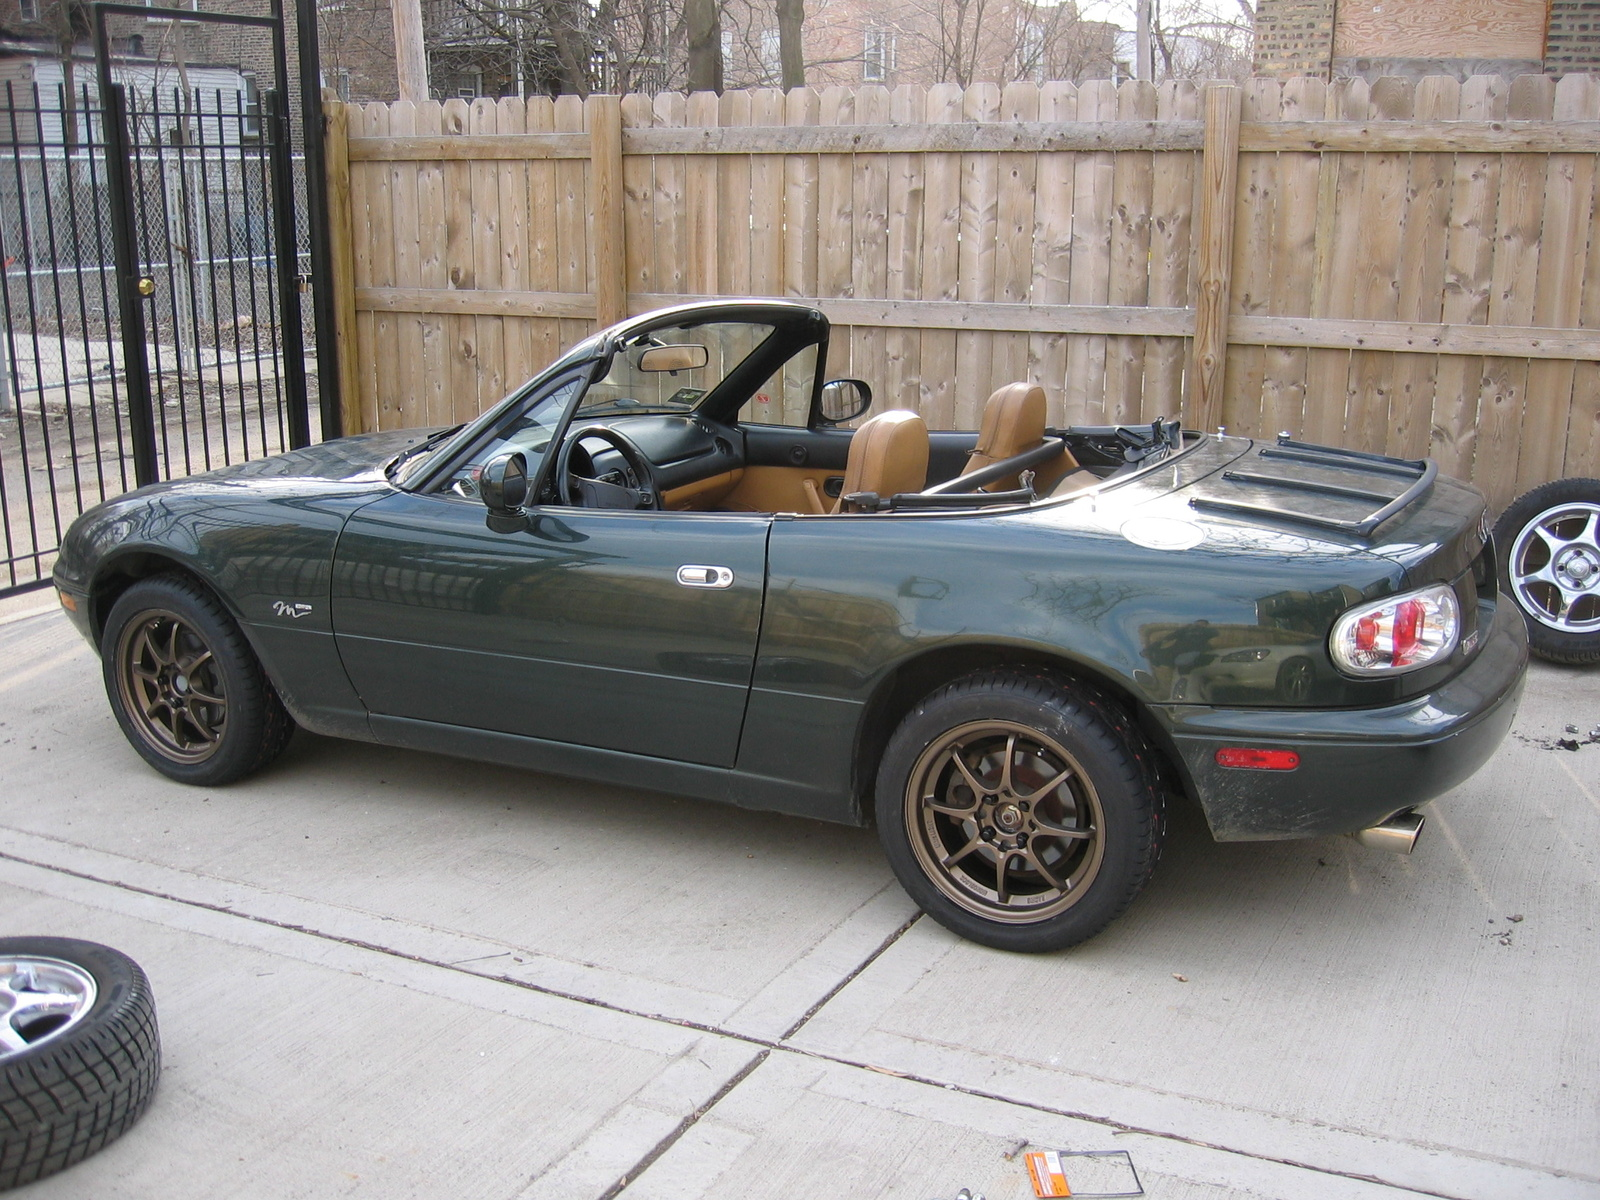 1997 mazda mx 5 pictures to pin on pinterest pinsdaddy